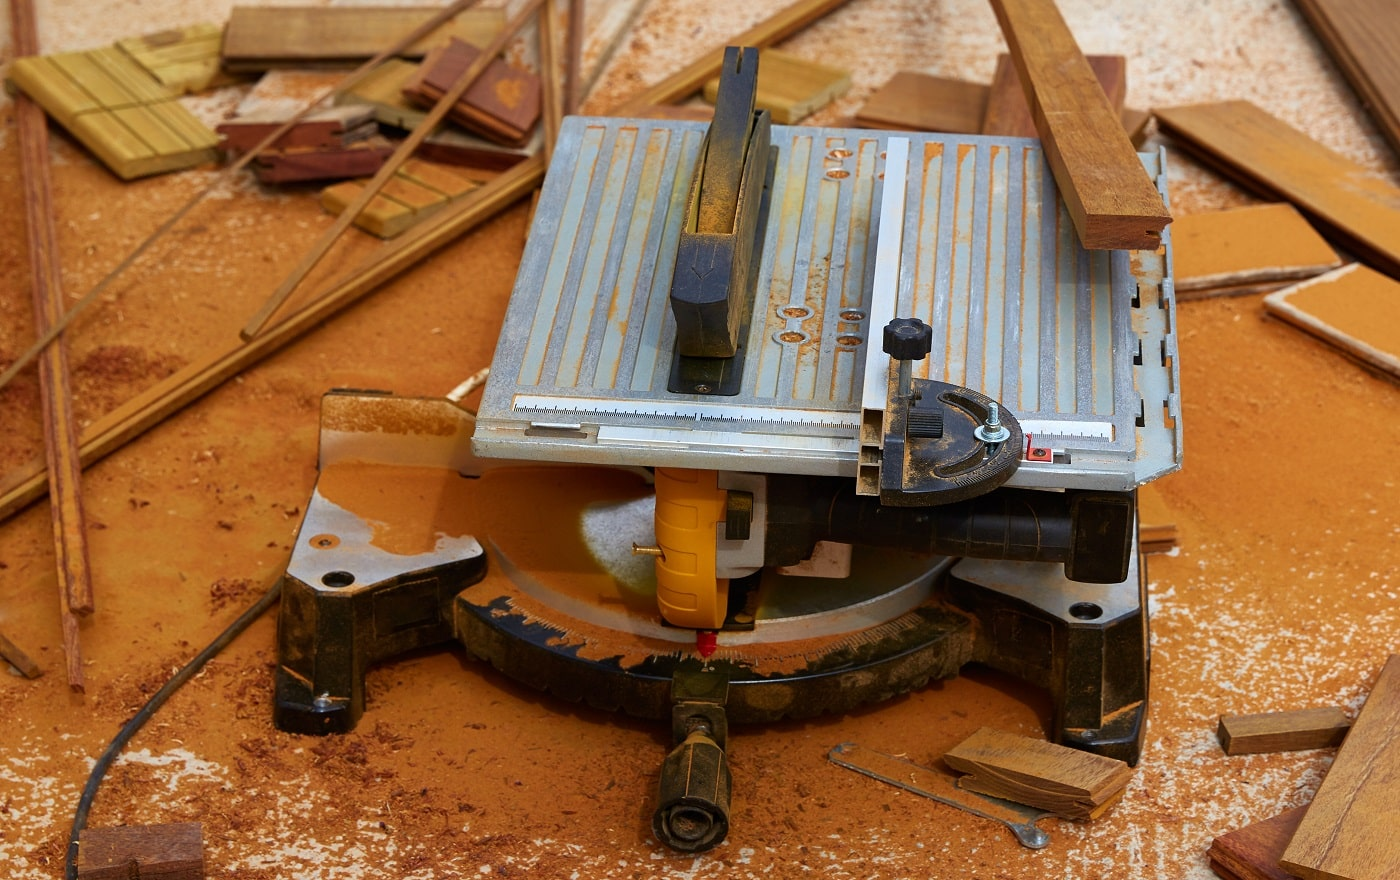 Circular table saw carpenter tool and sawdust in deck installation